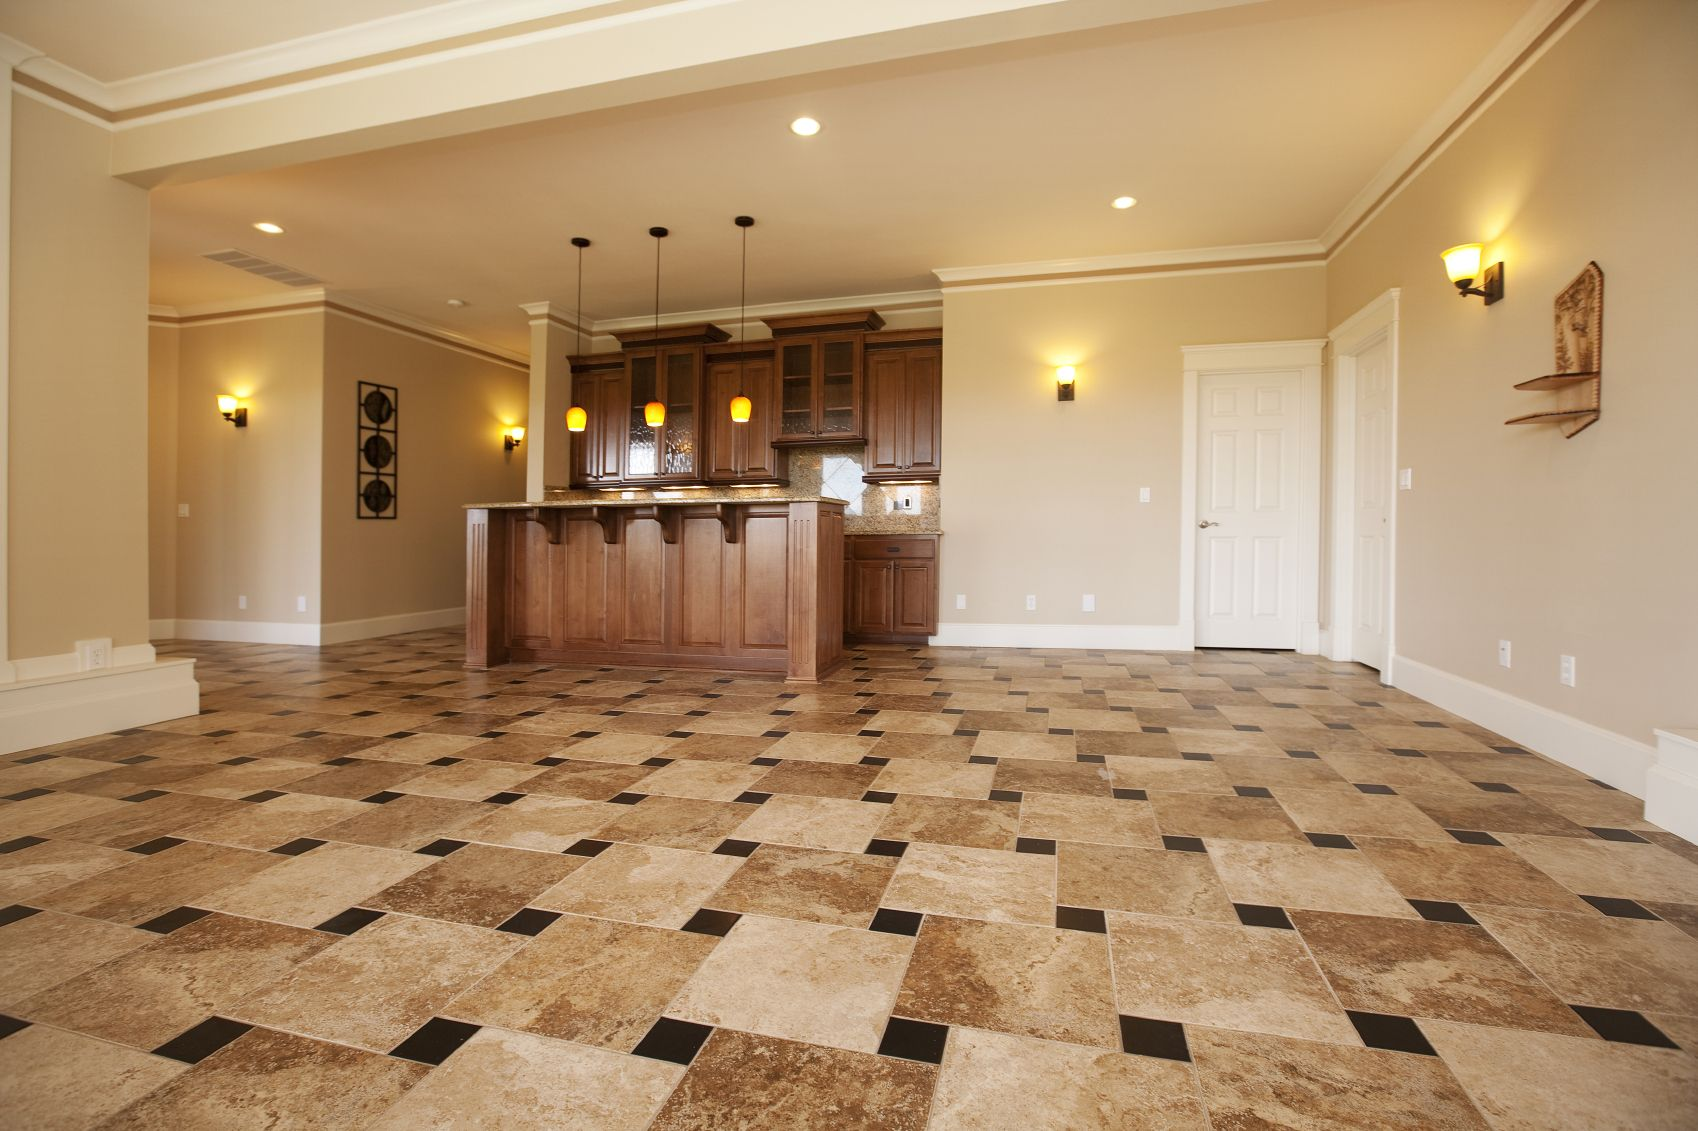 Stone Floors In Kitchen Laminate Flooring That Looks Like Stone Znktiwsk Home Design